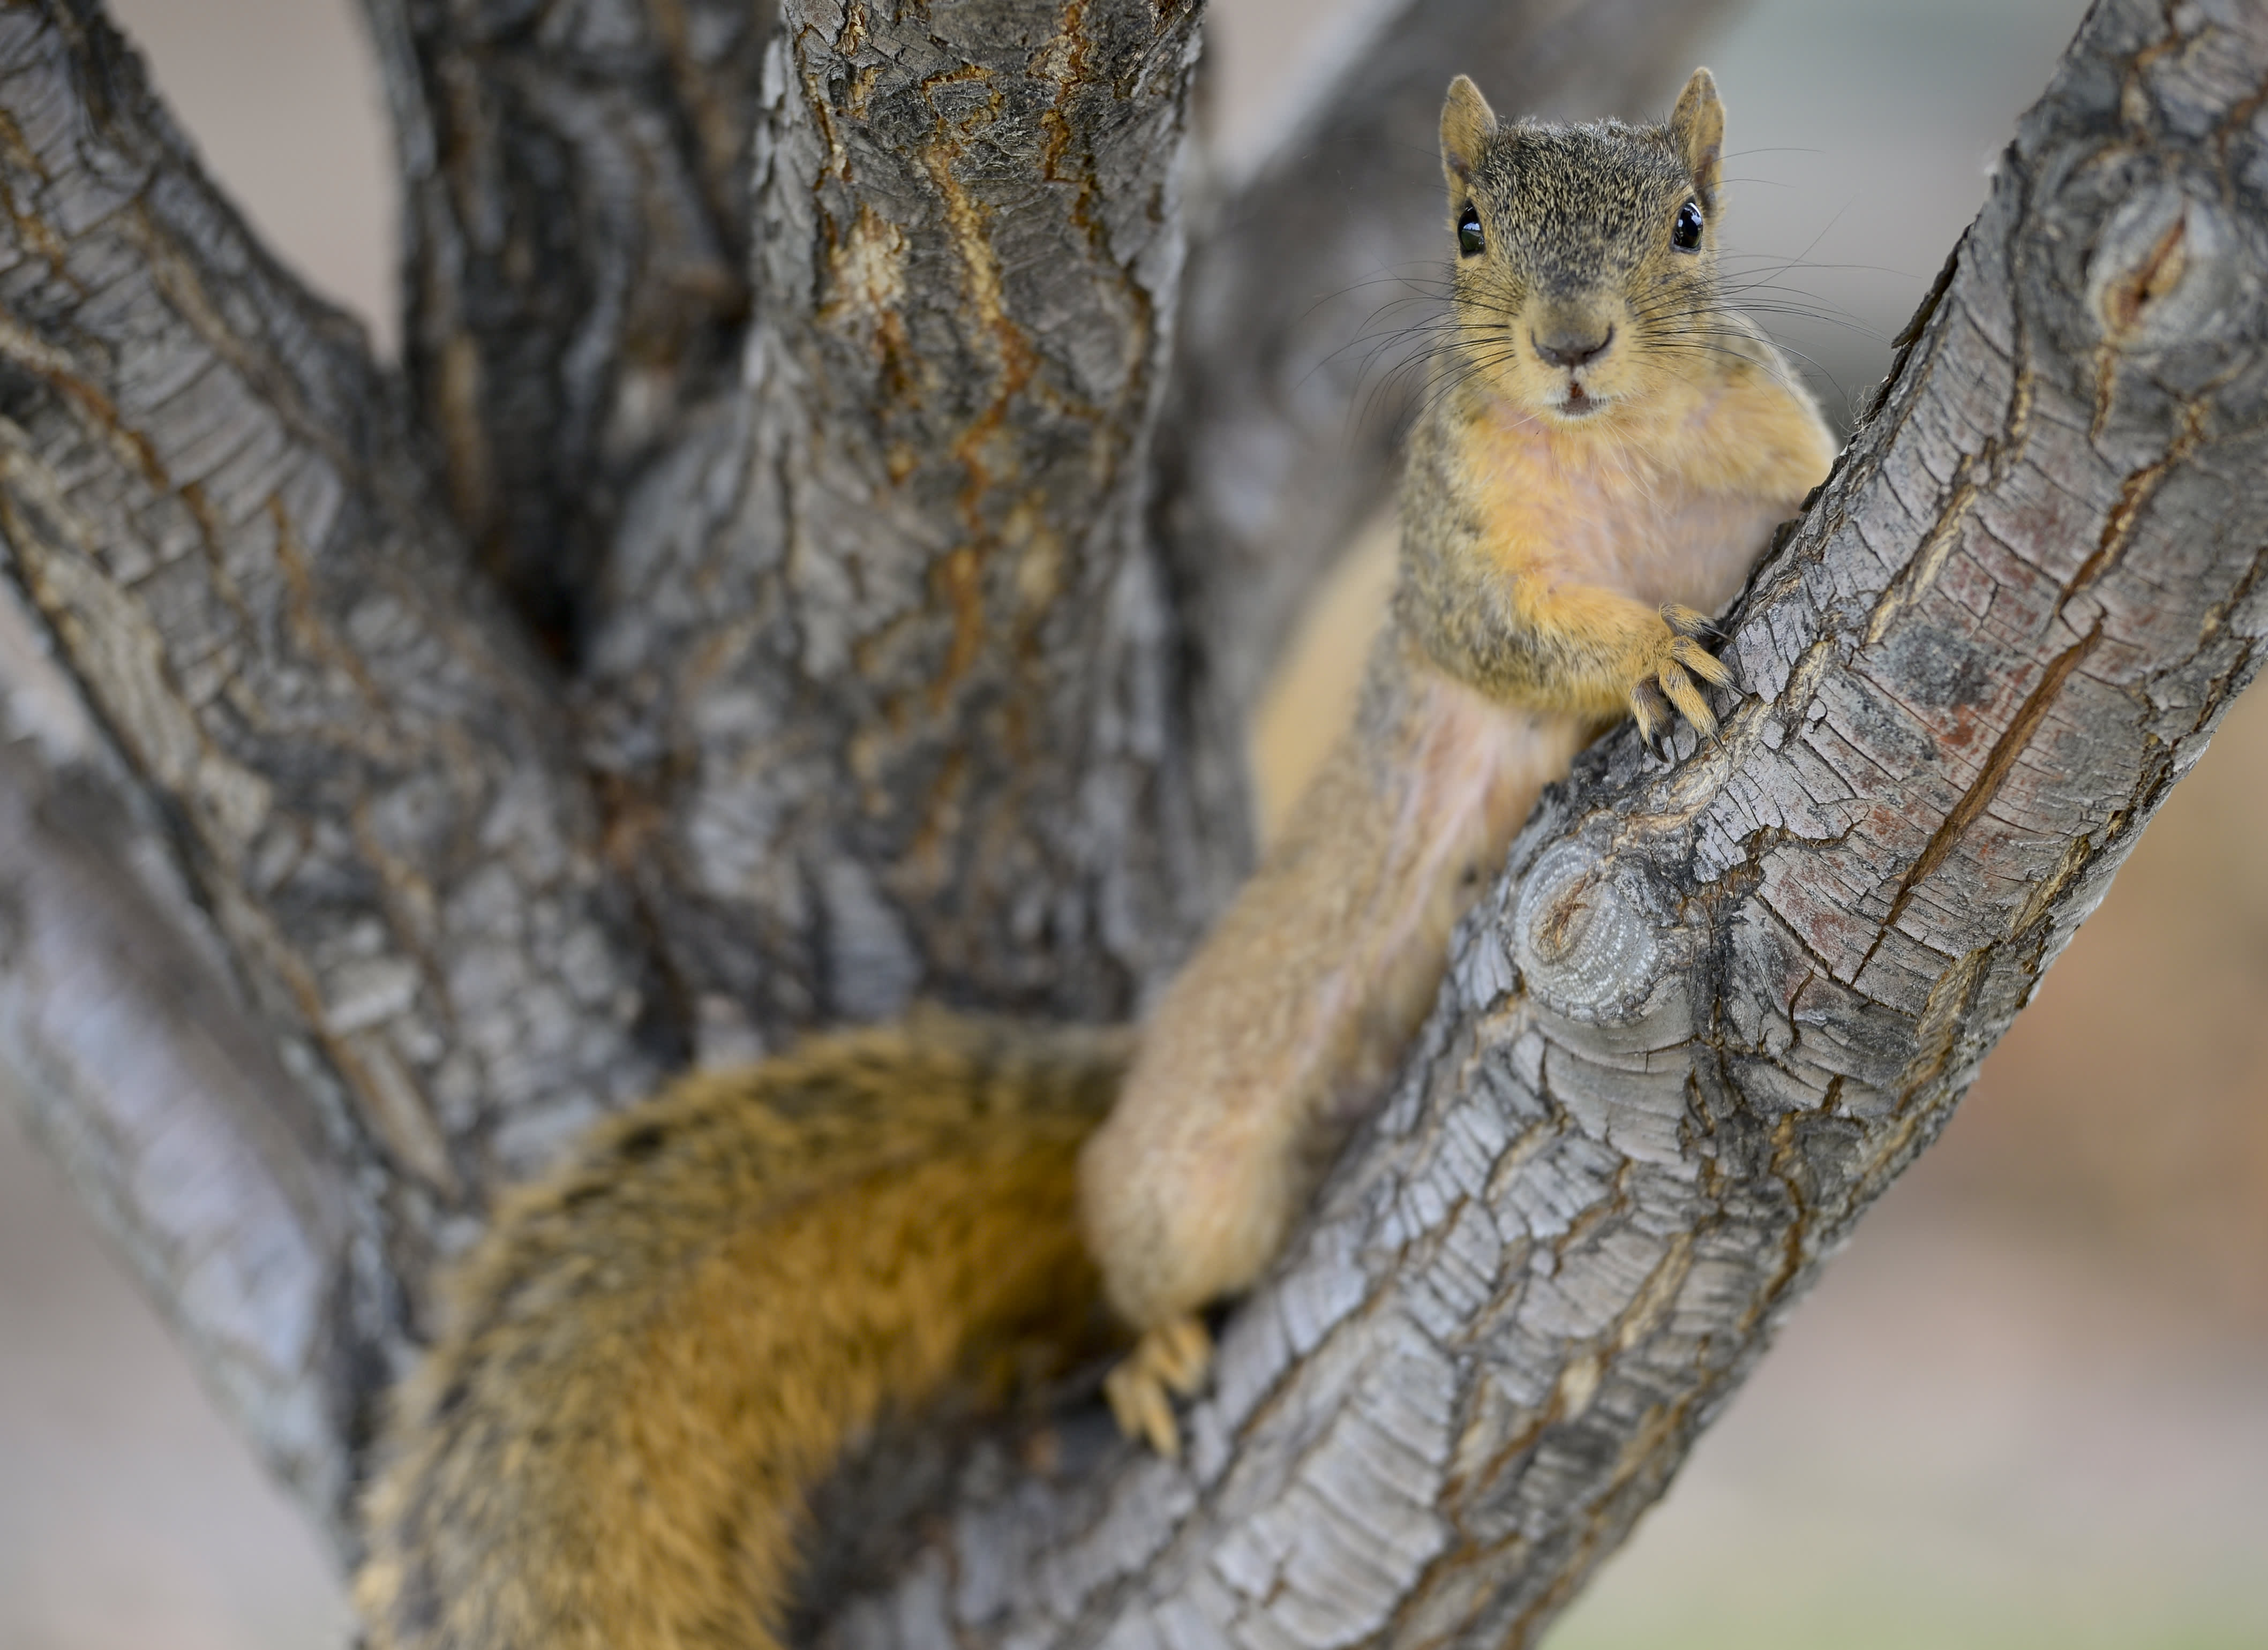 A squirrel has tested positive for the bubonic plague in Colorado – CNBC